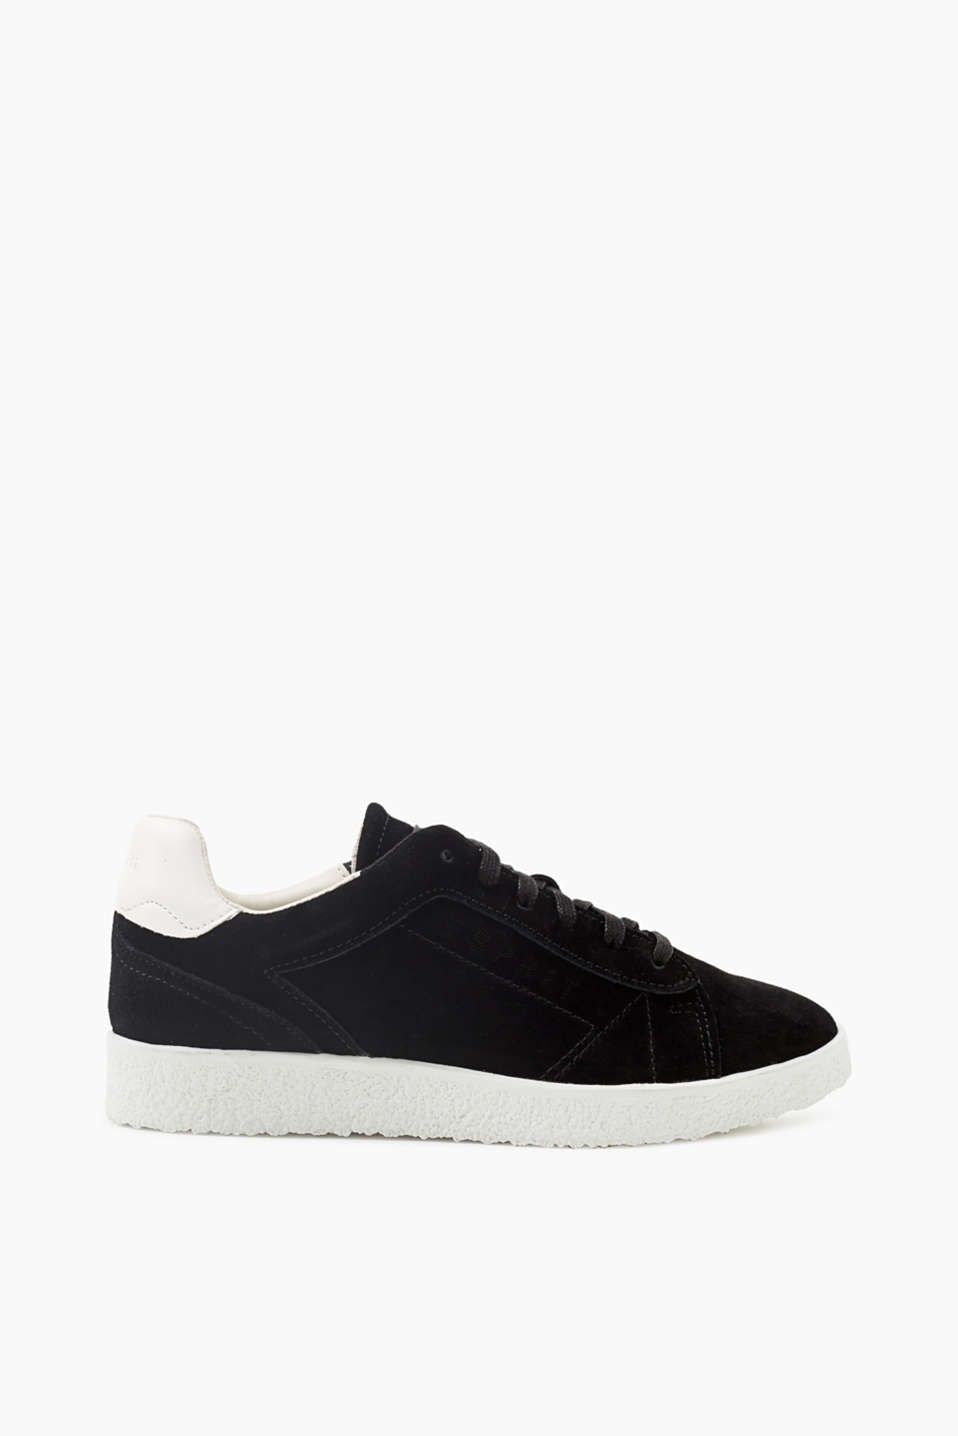 We love trainers! These trainers have a particularly intensive hue thanks to the soft suede.